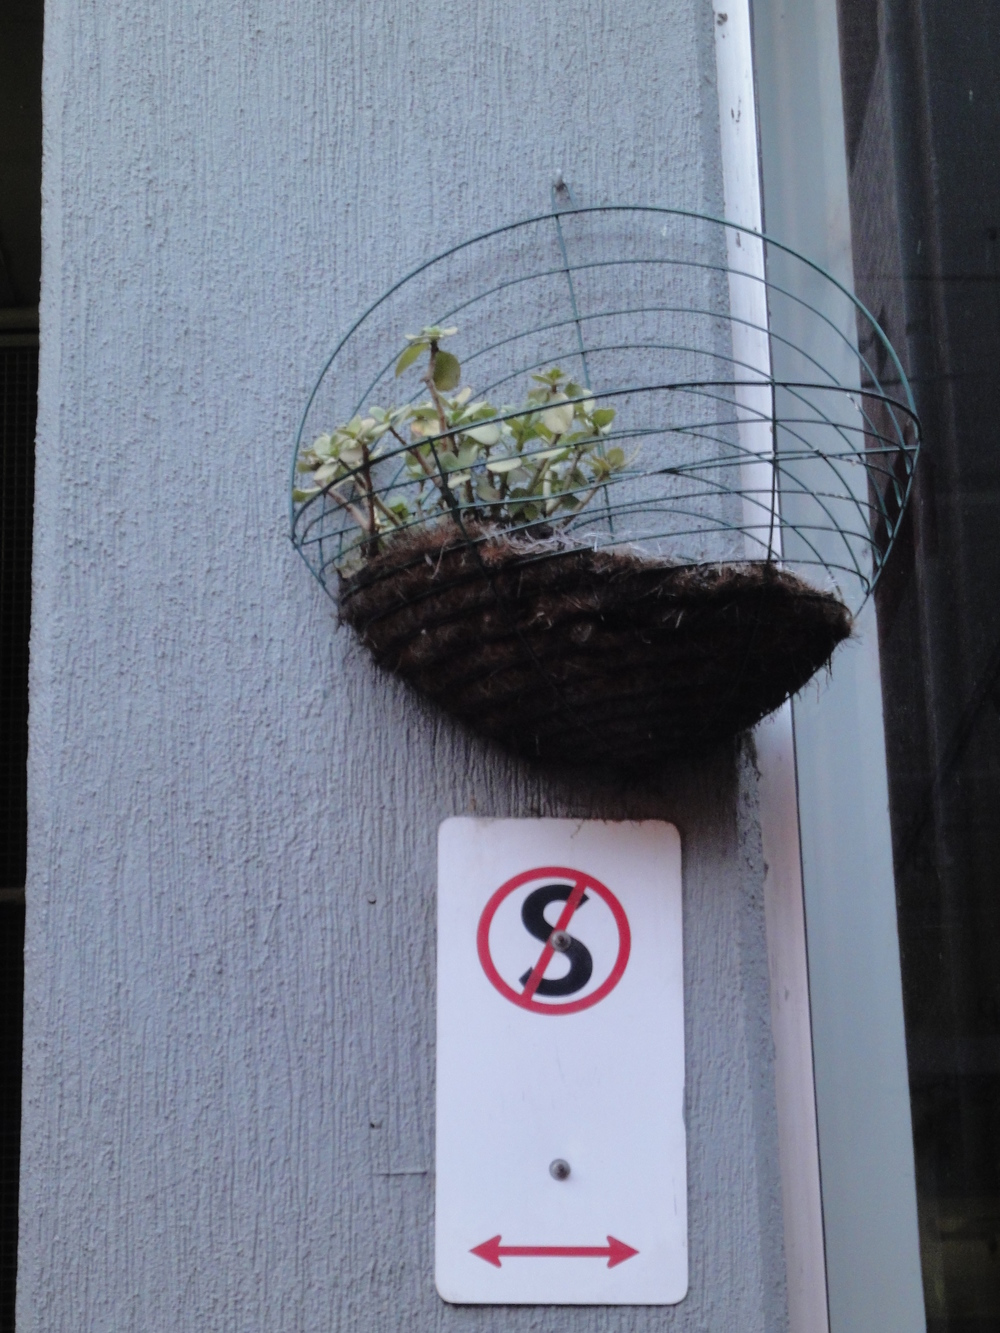 The irony of a standing plant basket in a 'no standing' zone on Hardware Lane in Melbourne, Australia.